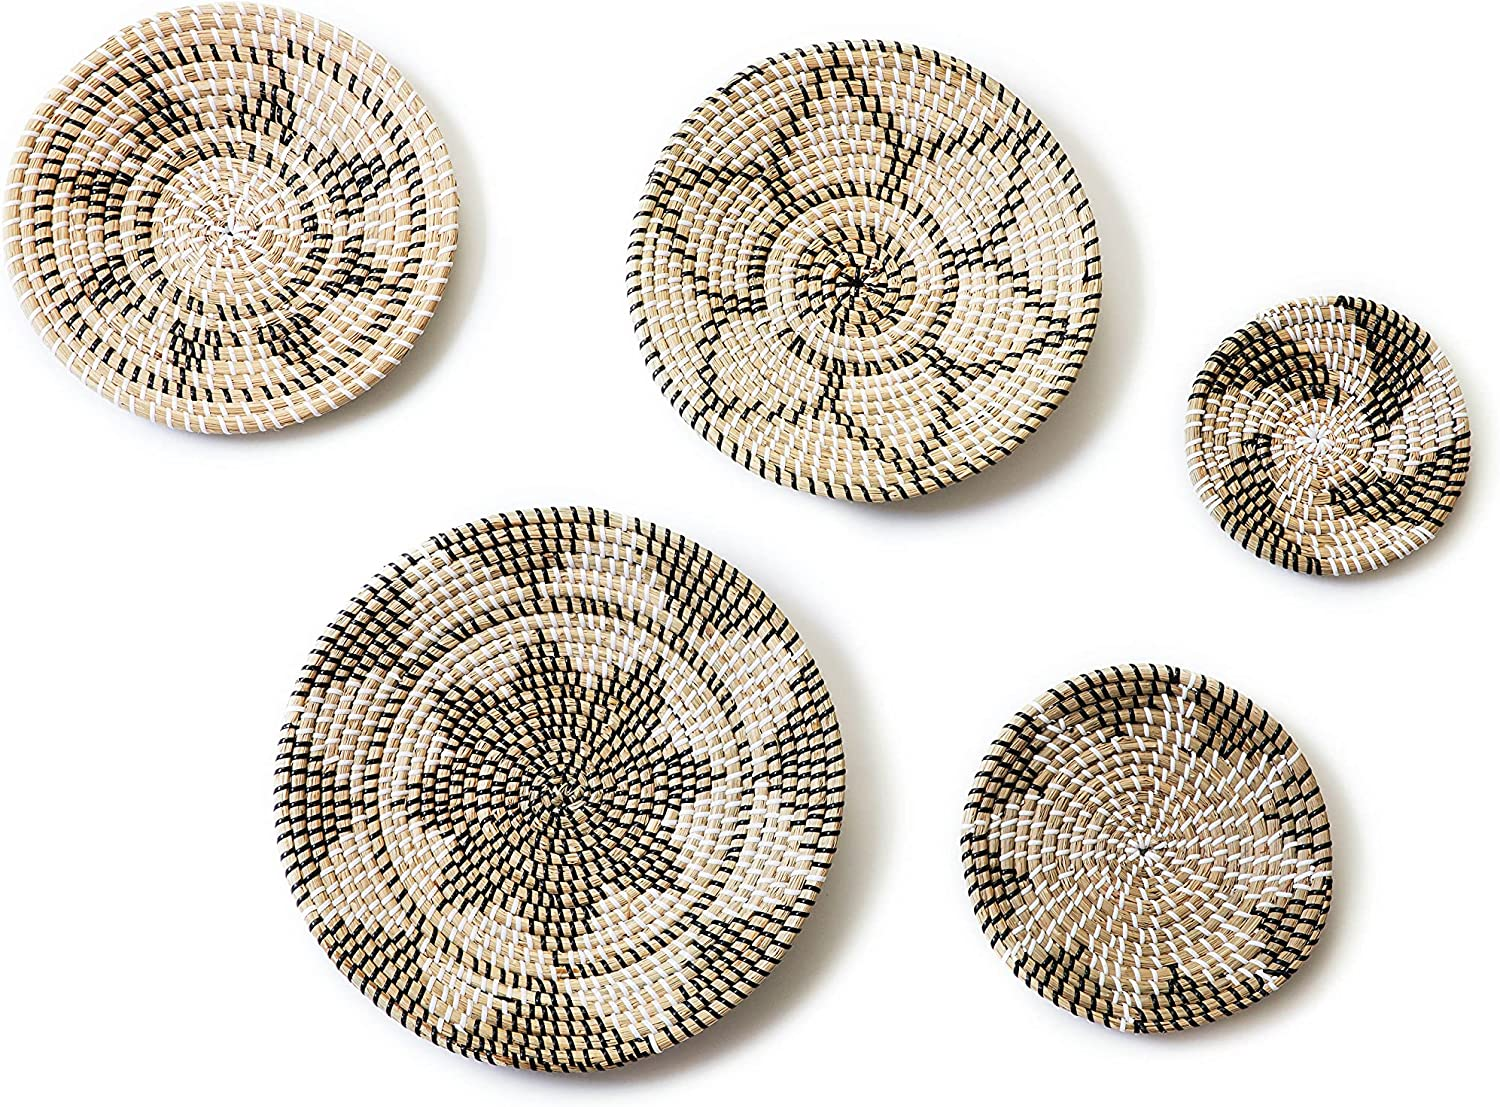 Keoocae Woven Wall Basket Set - five-piece Seagrass Hanging Woven Wall Basket, boho wall decor Perfect For Home bedroom, living room Decor,hanging wall baskets,wall decor,wicker baskets